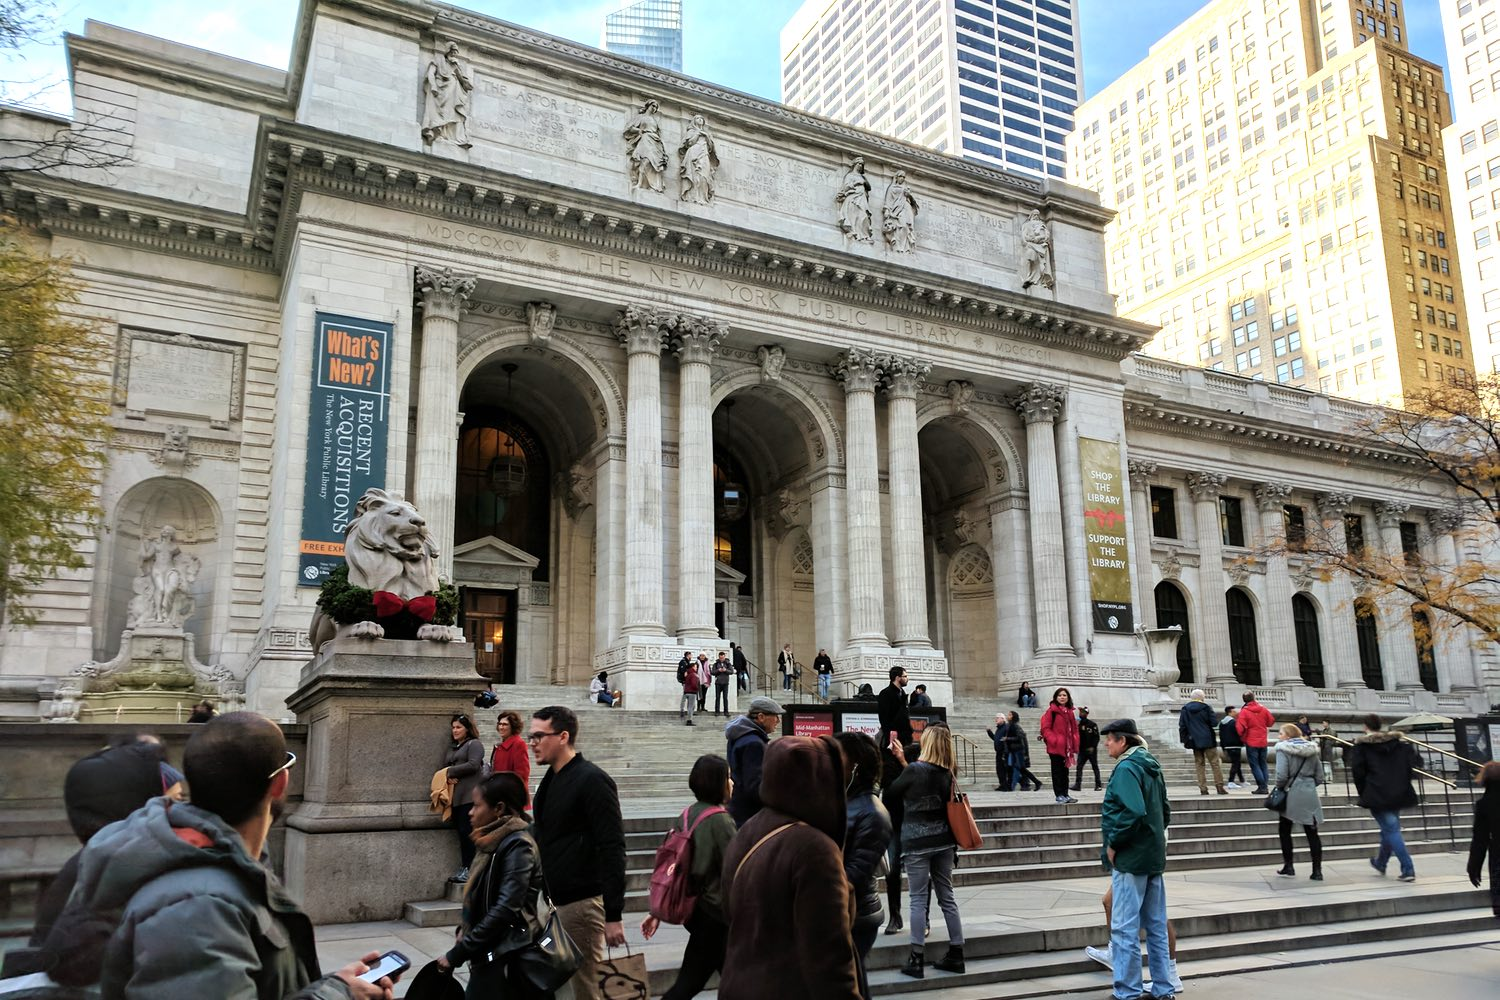 famous-landmarks-tv-shows-movies-nyc-character-32-c32-new-york-manhattan-travel-new-york-public-library